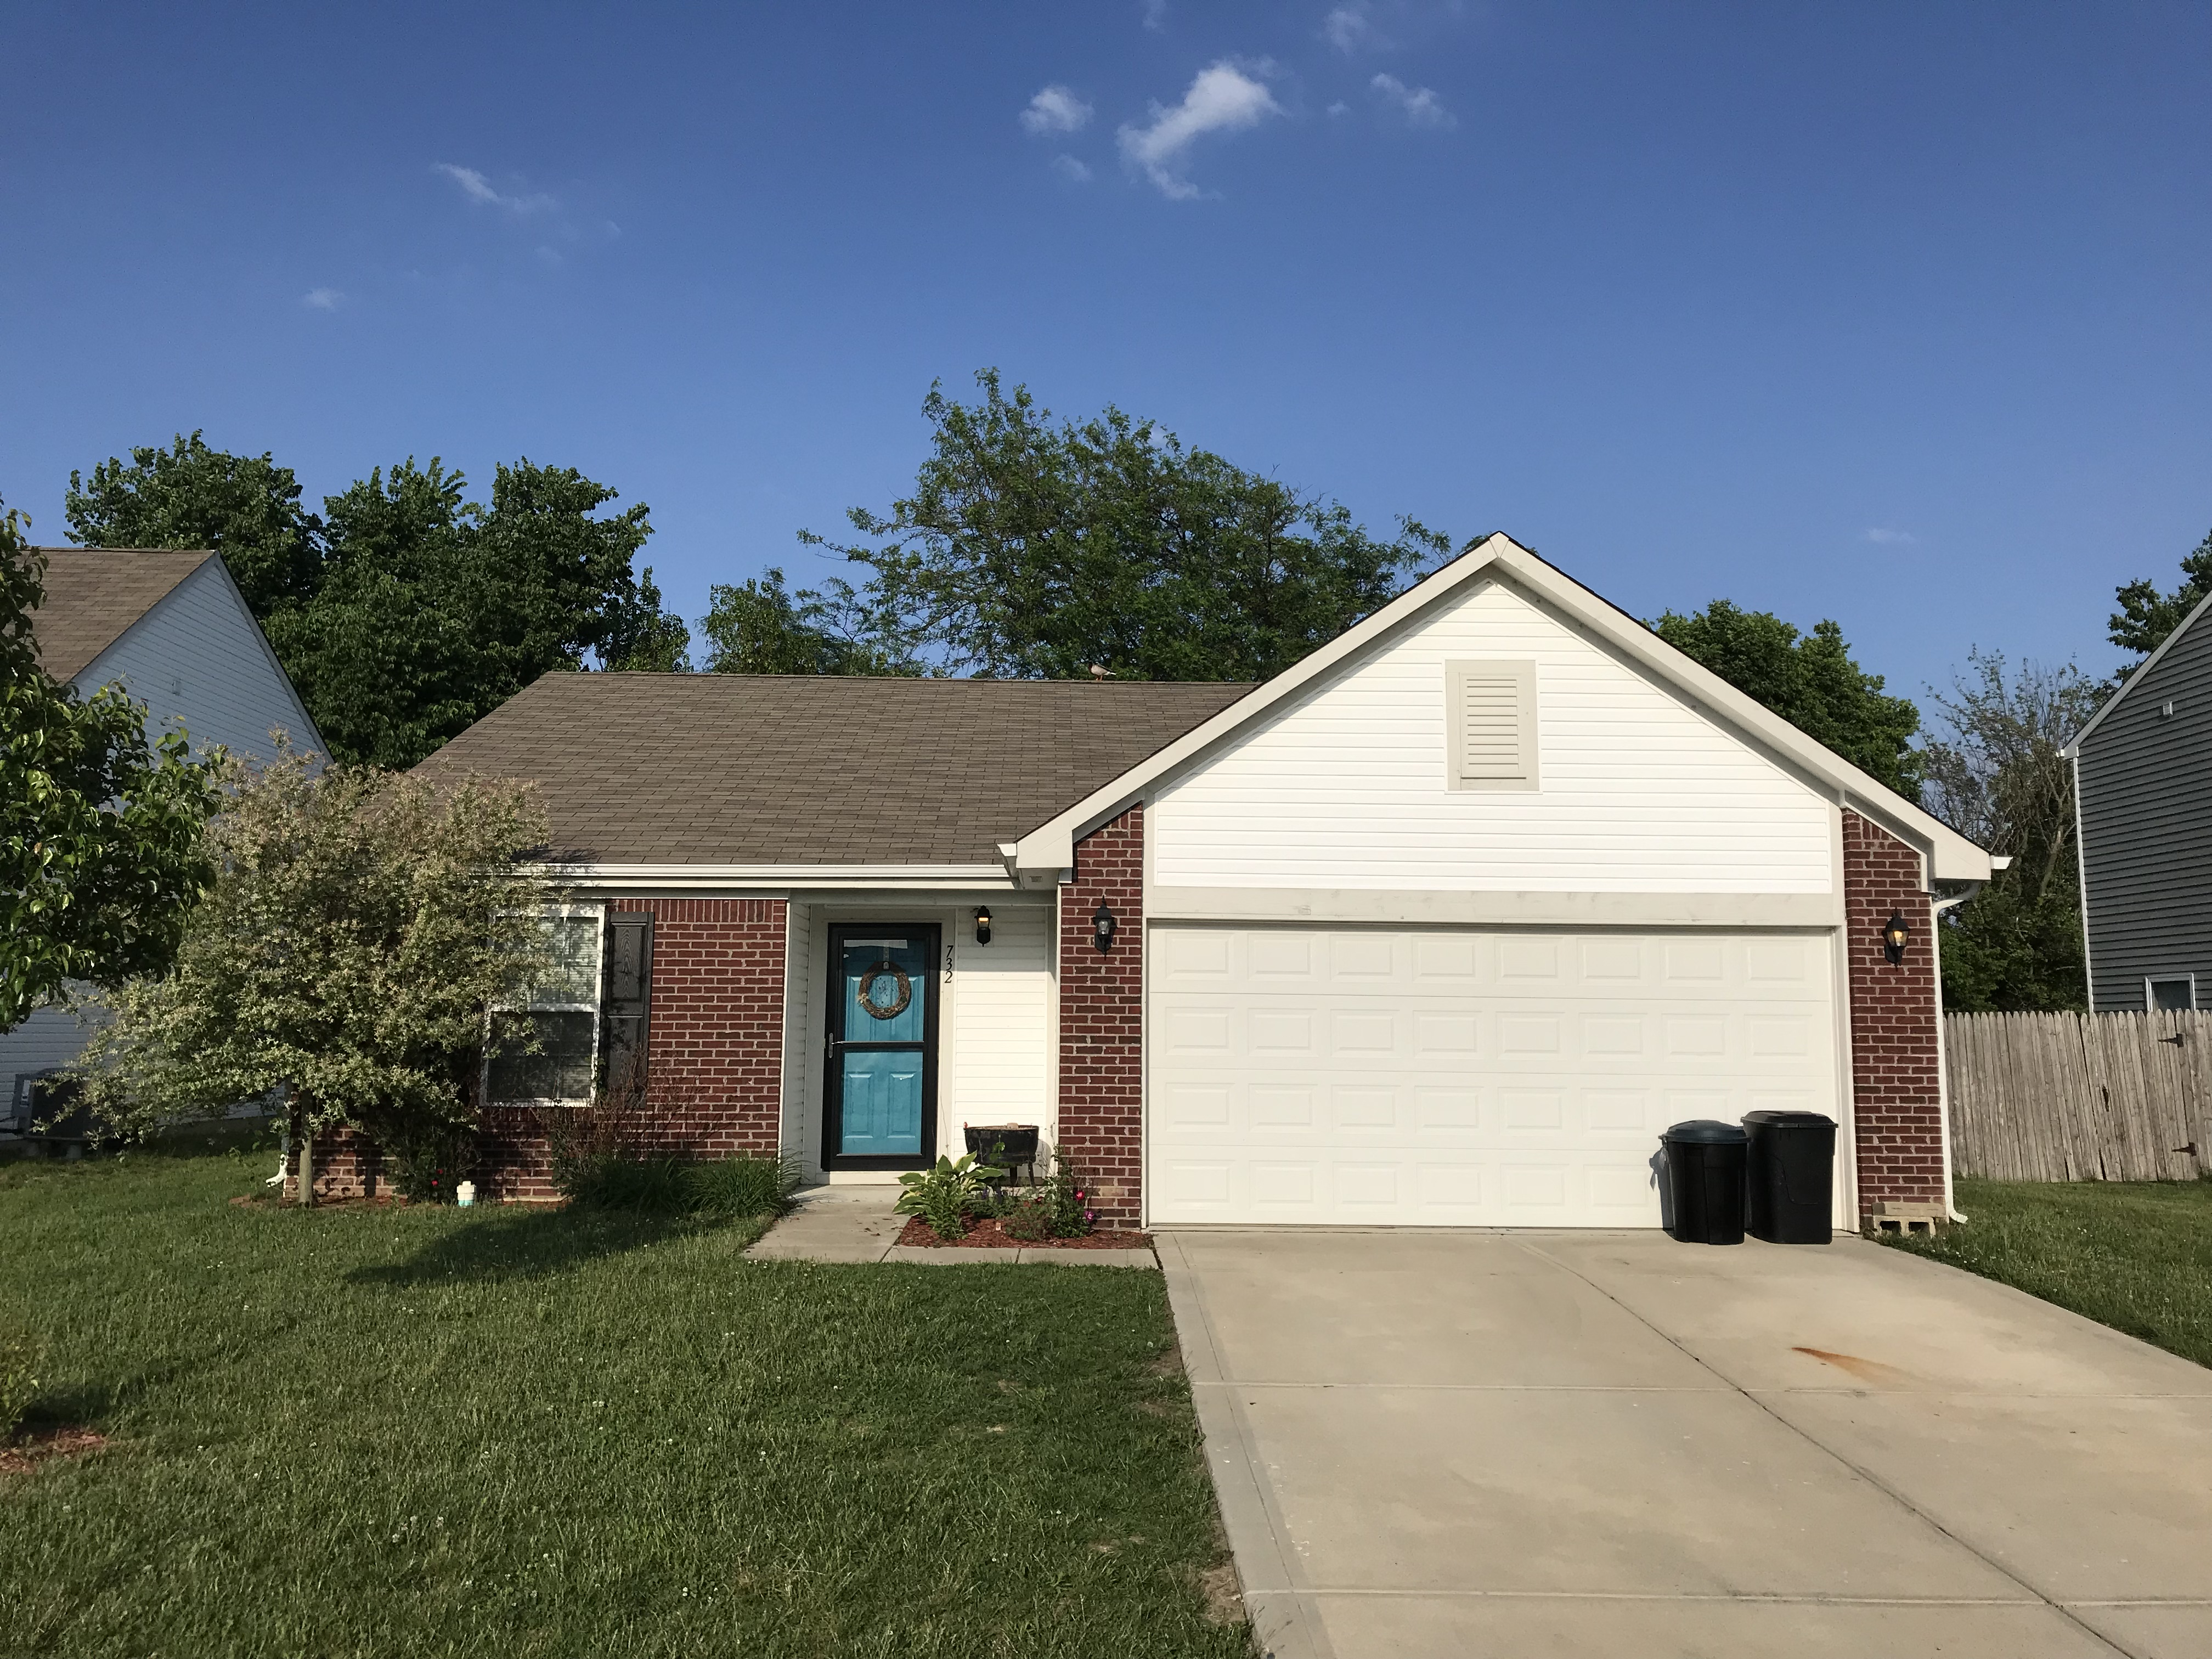 Photo of 732 Grassy Bend Dr, Greenwood, IN, 46143